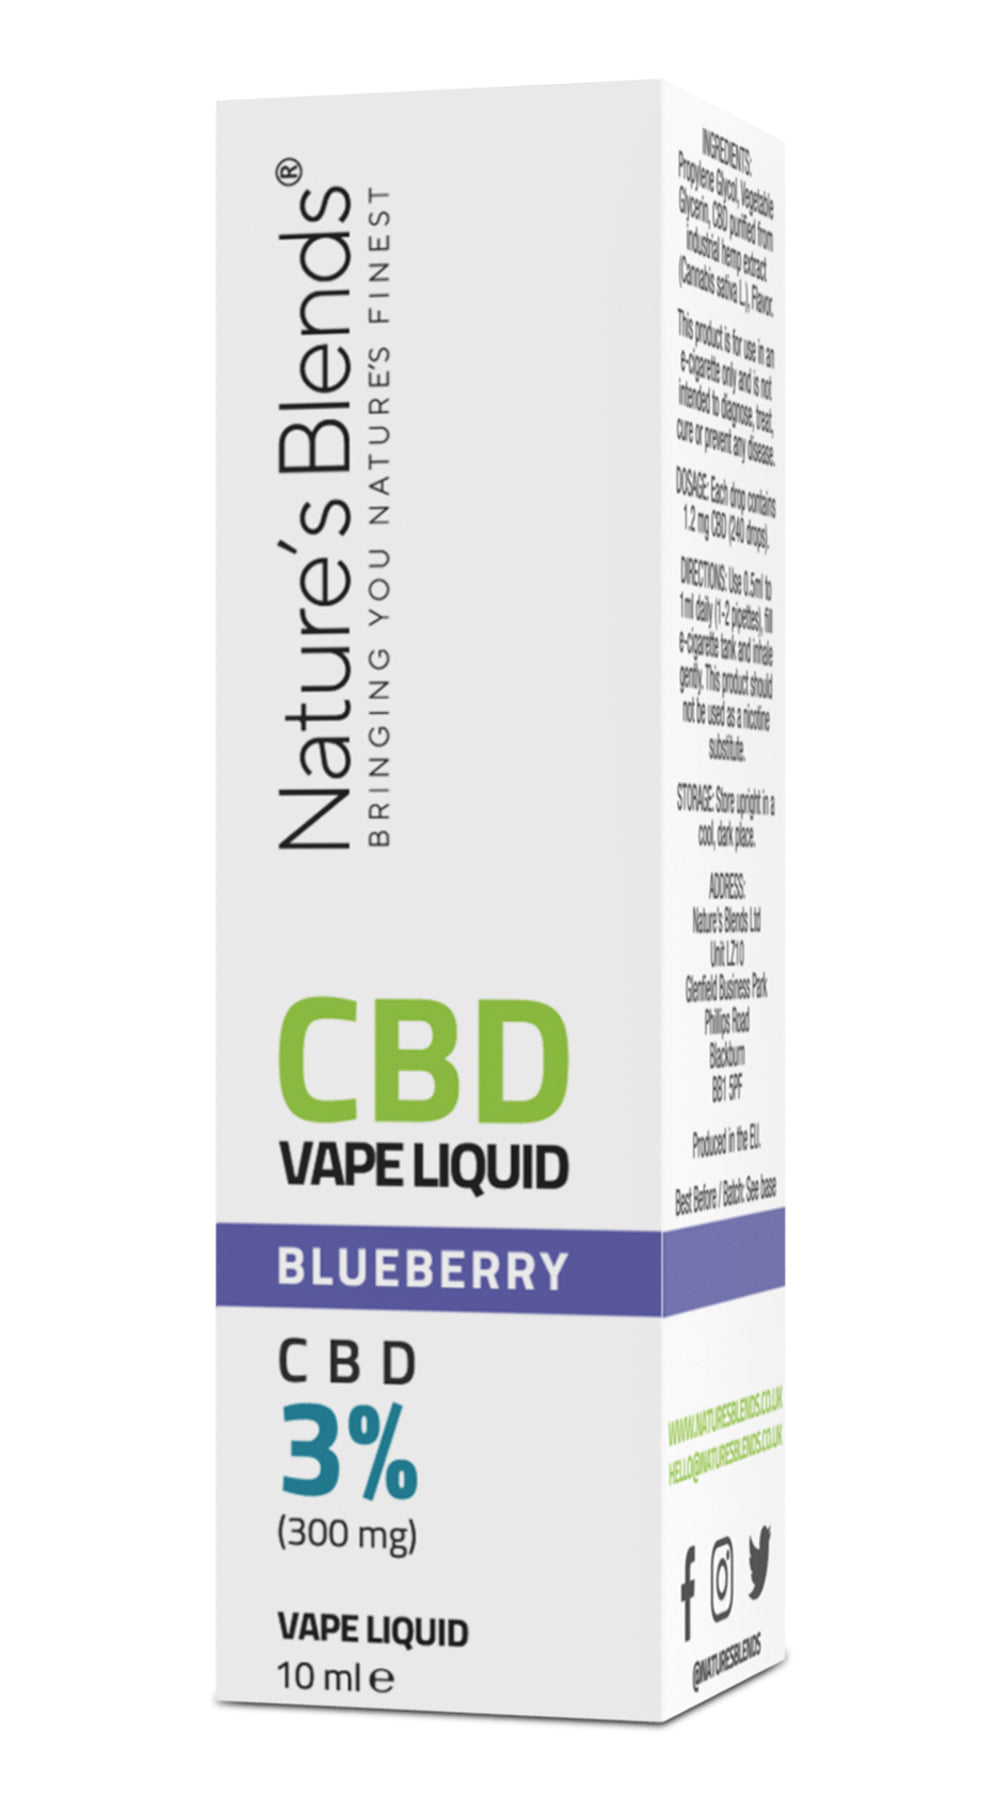 A blueberry flavour 300mg cbd vape packaging by natures blends